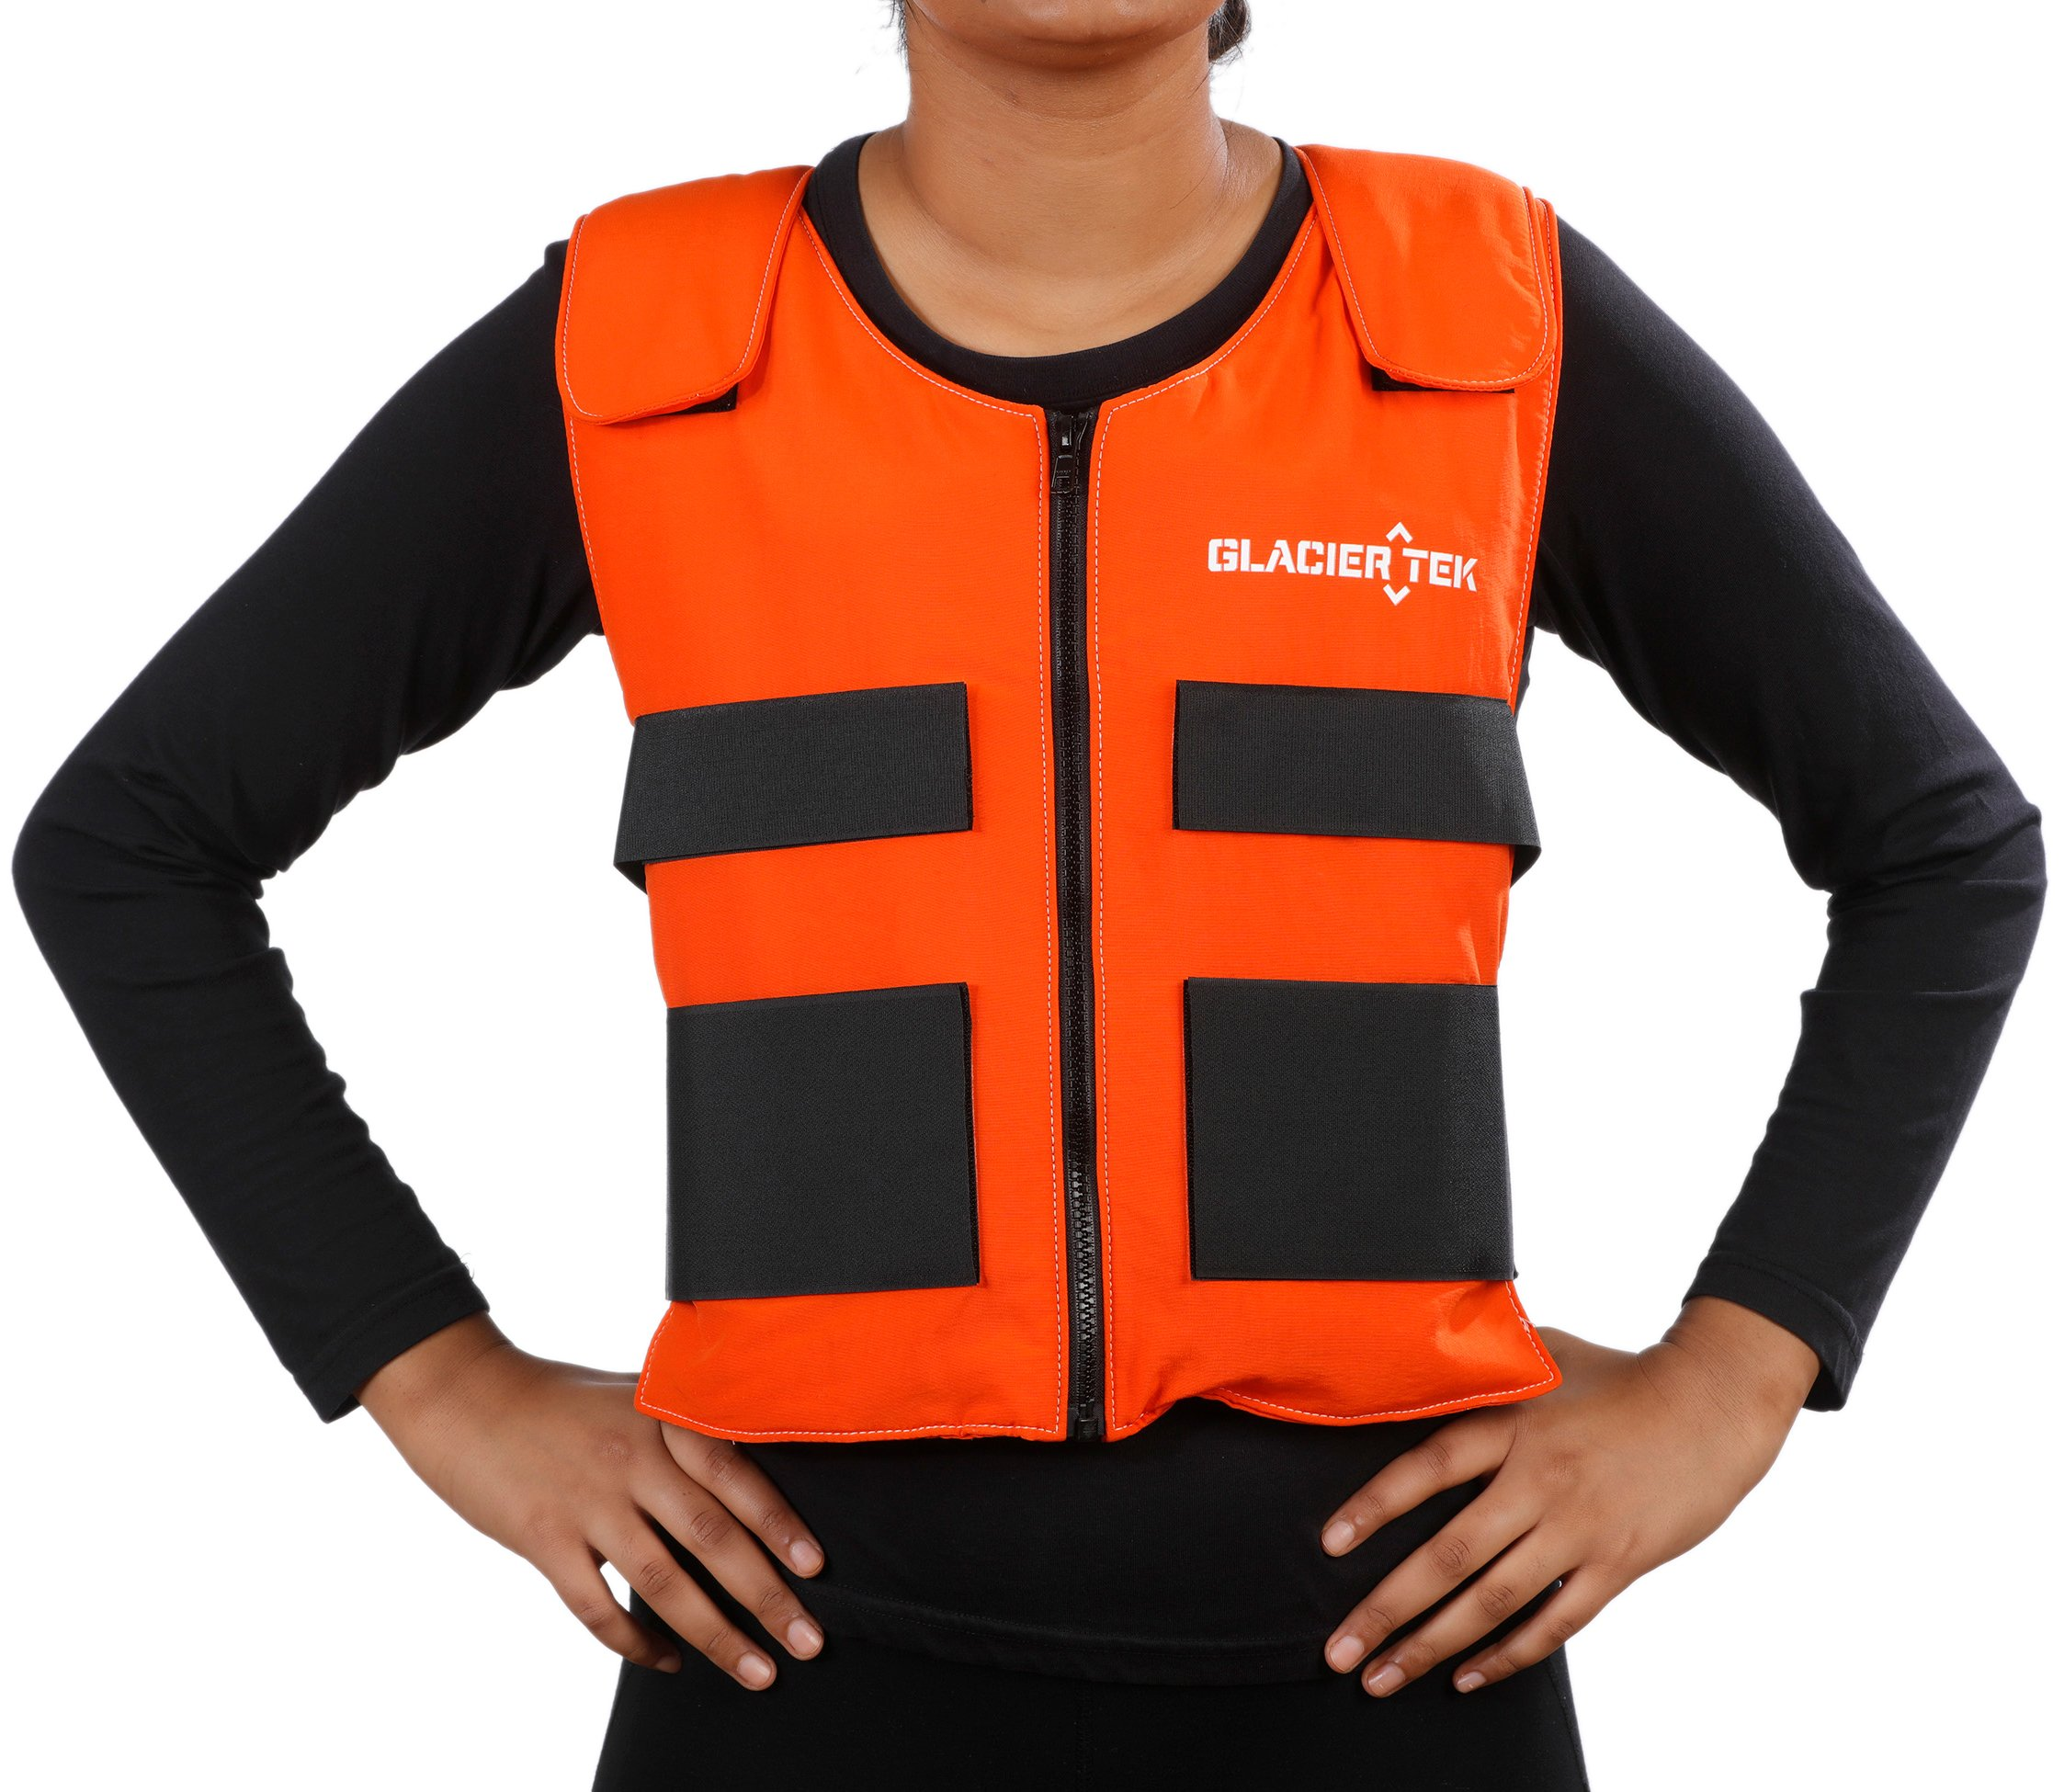 Glacier Tek Sports Cool Vest with Set of 8 Nontoxic Cooling Packs Orange by Glacier Tek (Image #1)